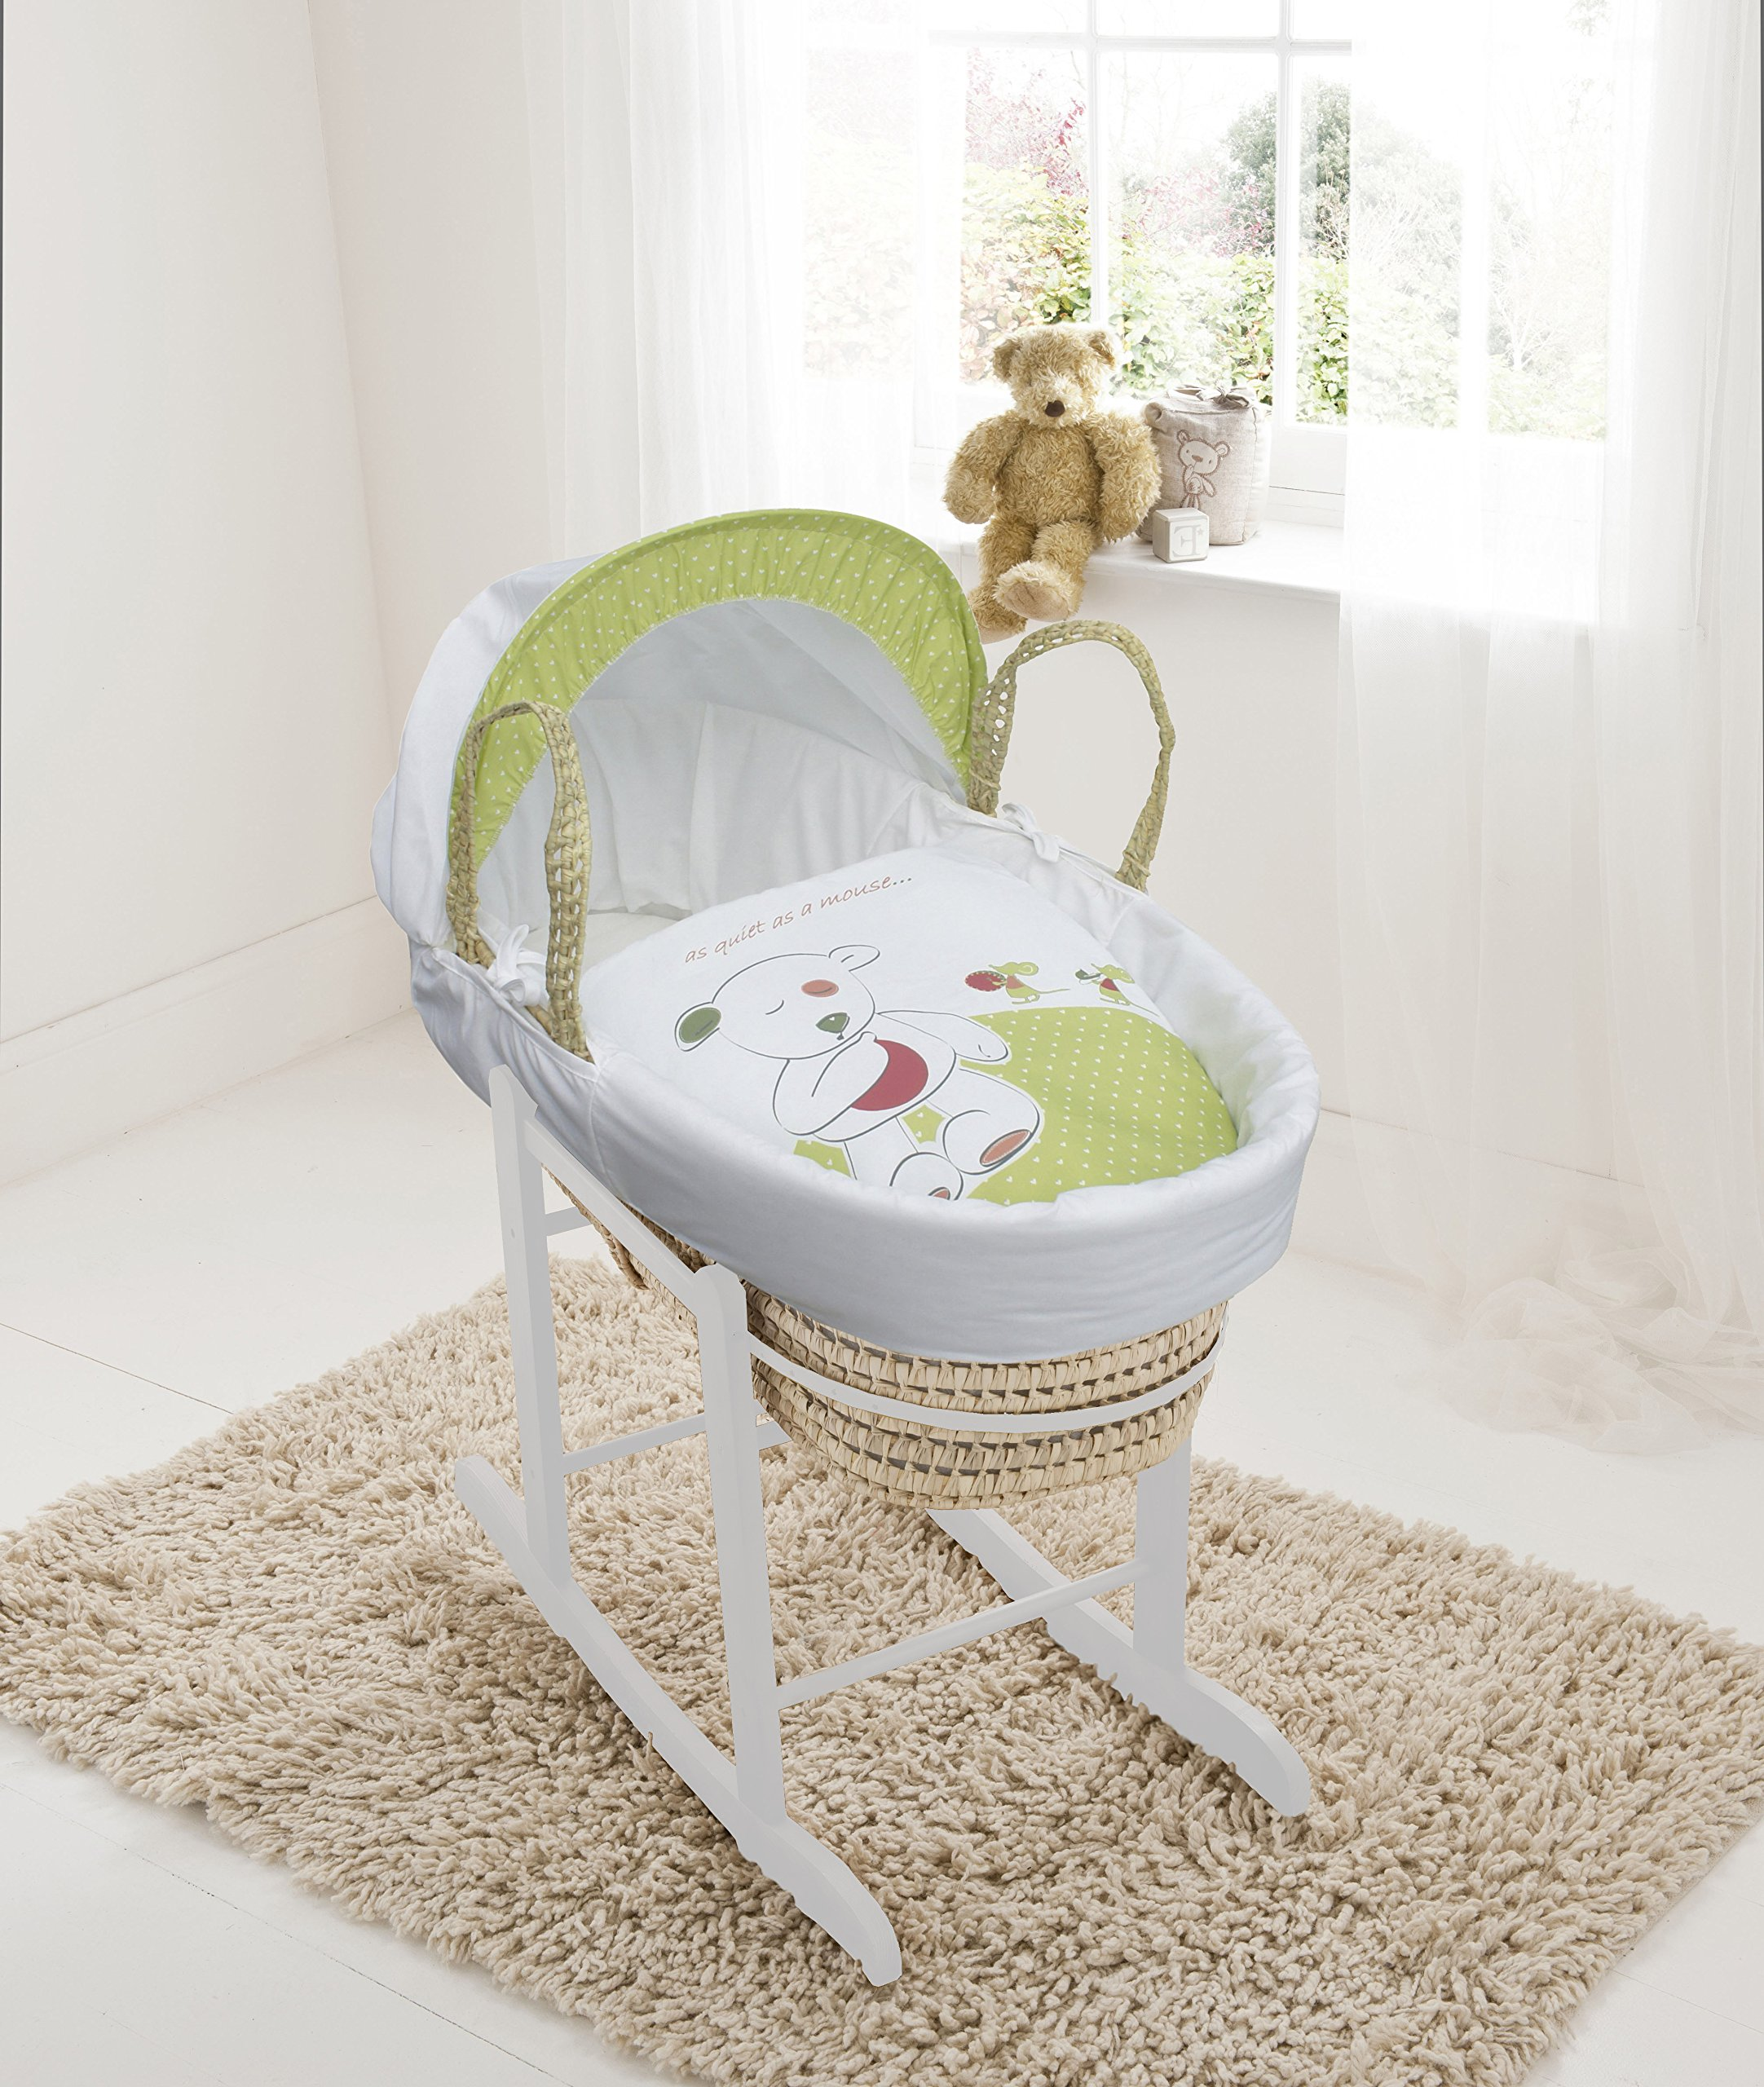 Quiet Little Mouse On Palm Moses Basket & Deluxe White Rocking Stand Elegant Baby Suitable from newborn for up to 9kg, this Moses Basket uses Easy-care Poly Cotton with a soft padding surround Suitable from newborn to 9 months It also includes a comfortable mattress and an adjustable hood perfect to create a cosy sleeping space for your precious little one 1